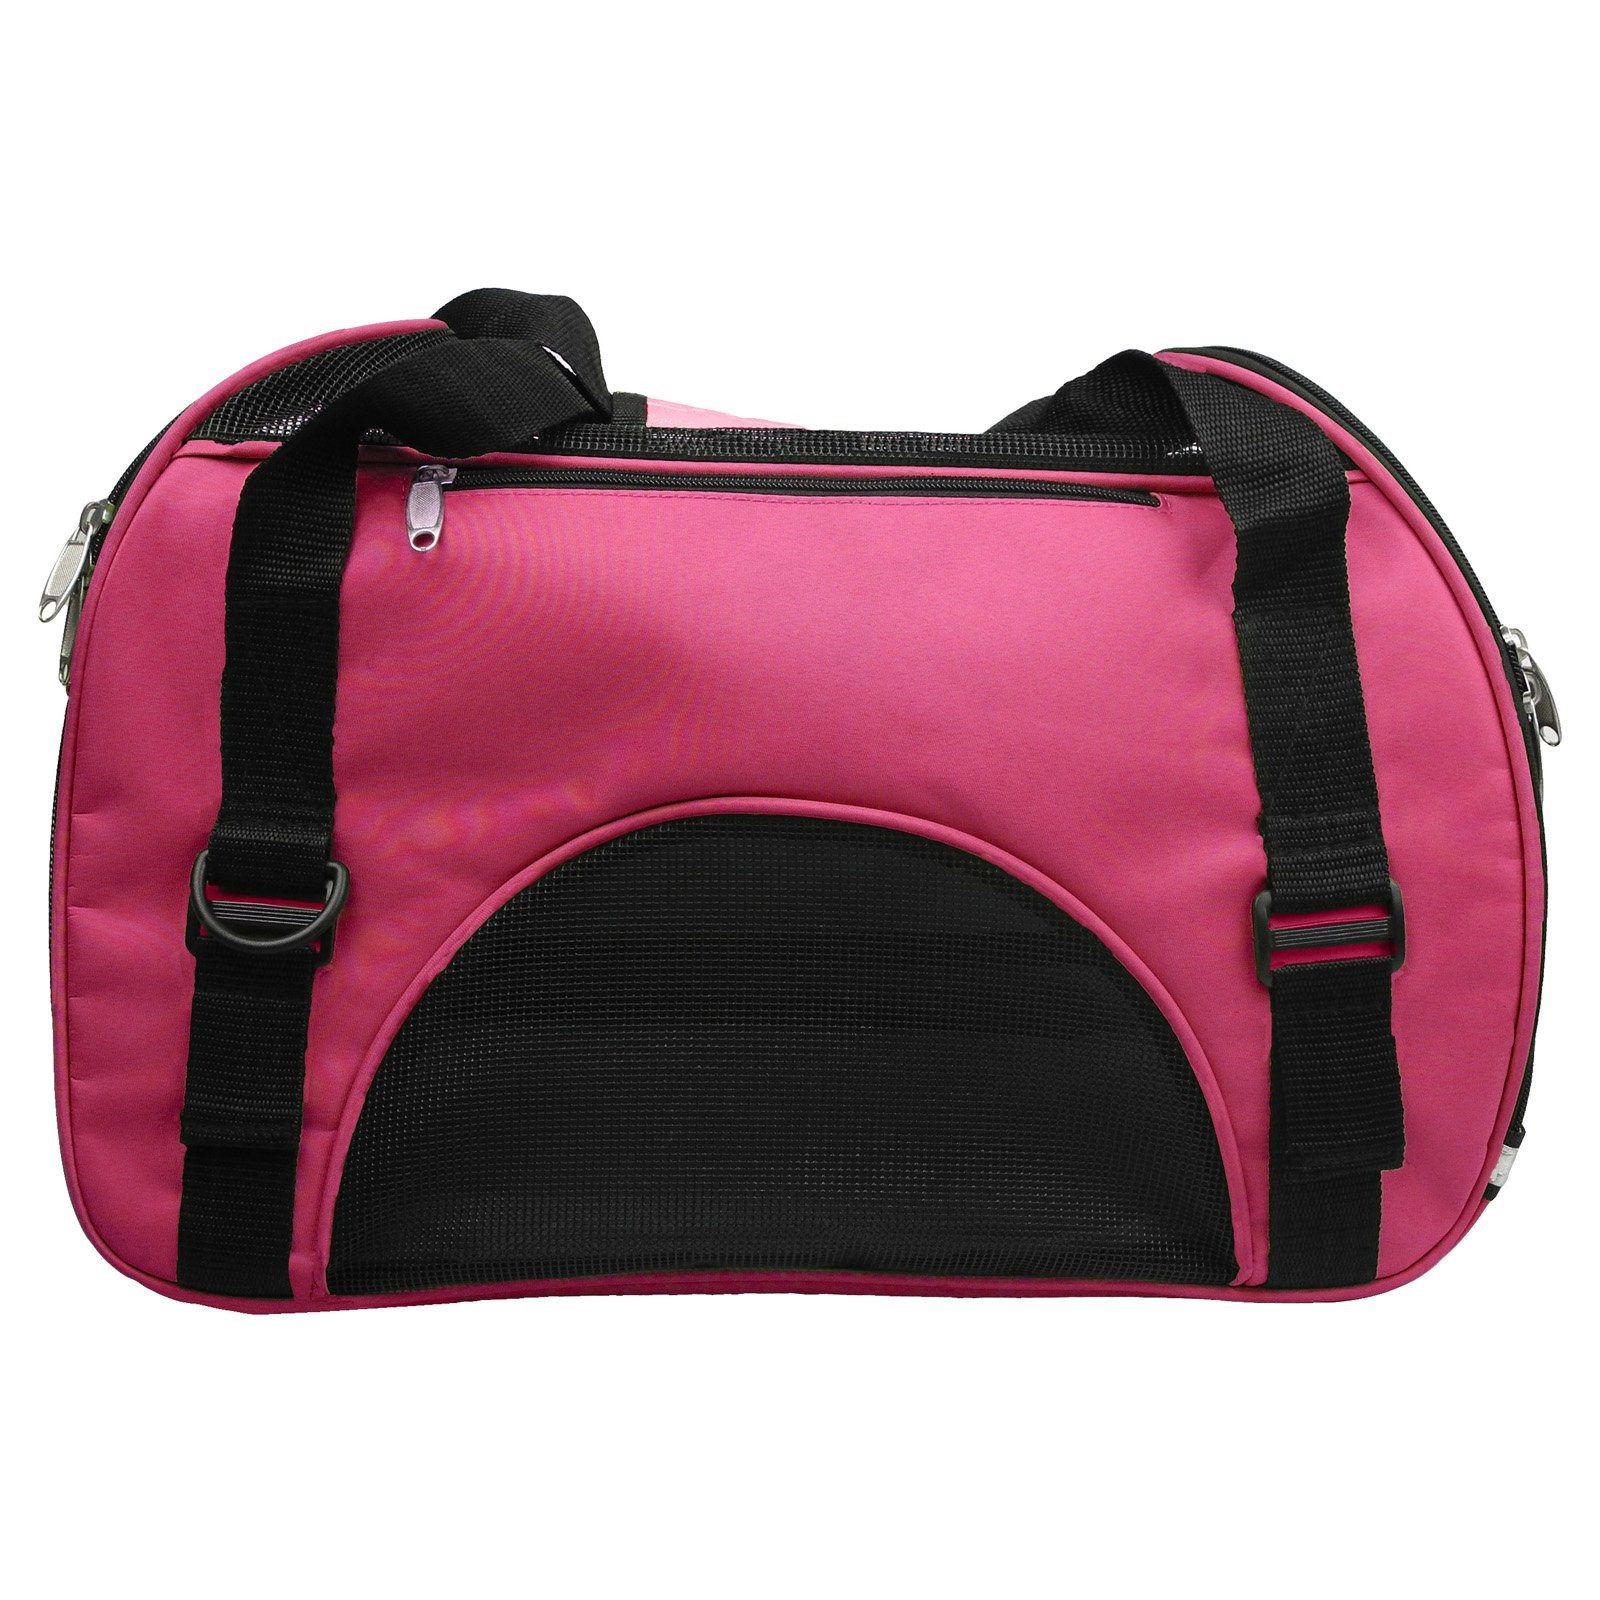 Pet Life Airline Approved Sporty Zippered Fashion Pet Carrier